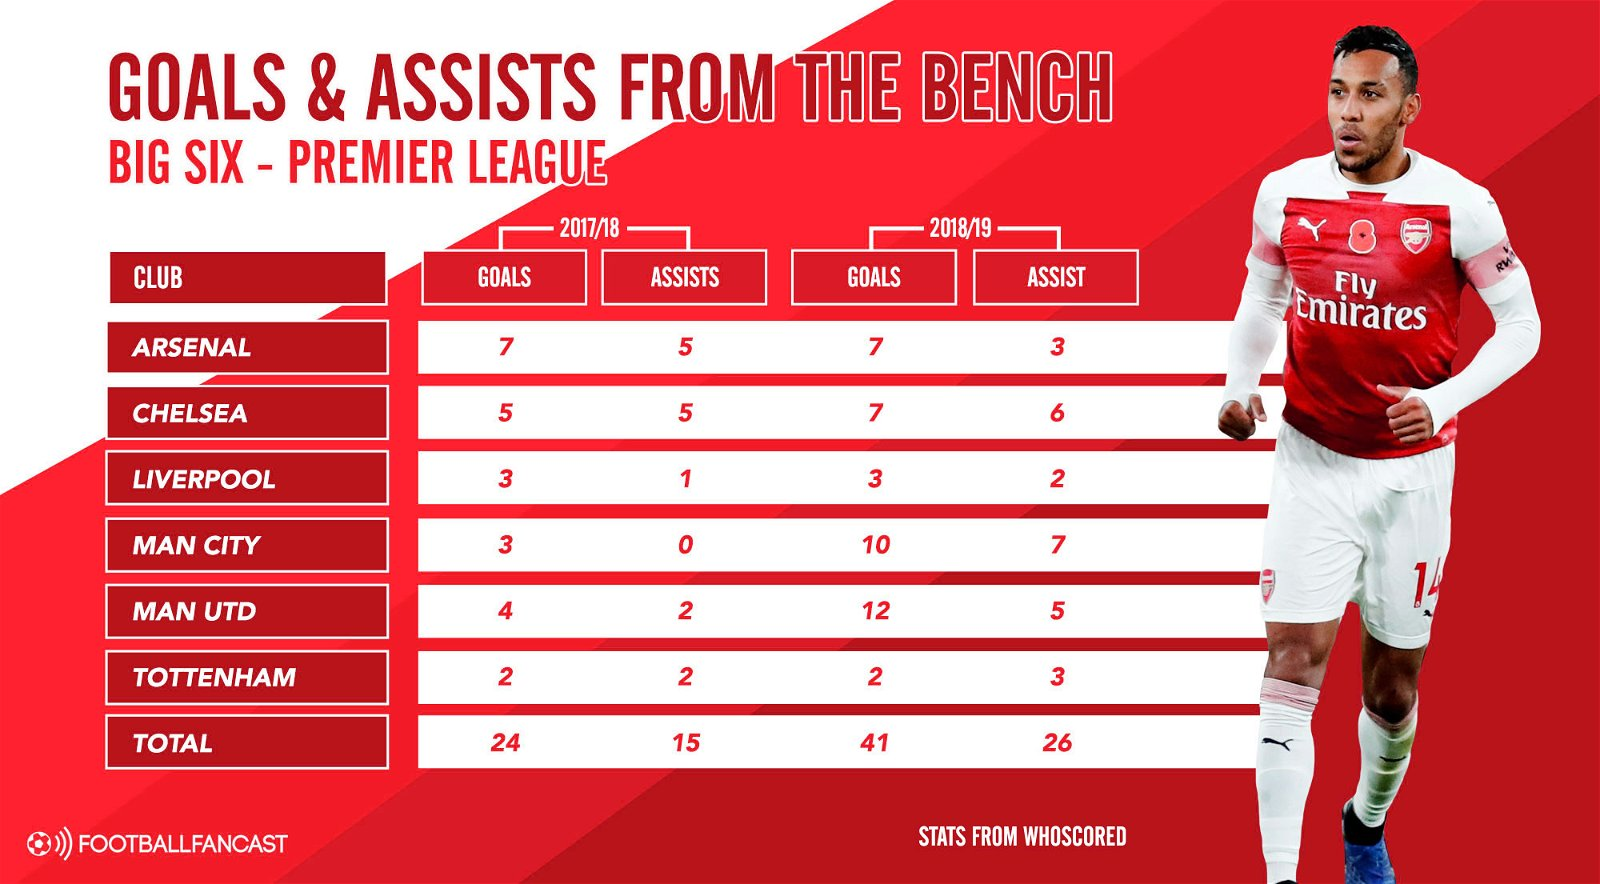 Goals and Assists from the bench - Big Six